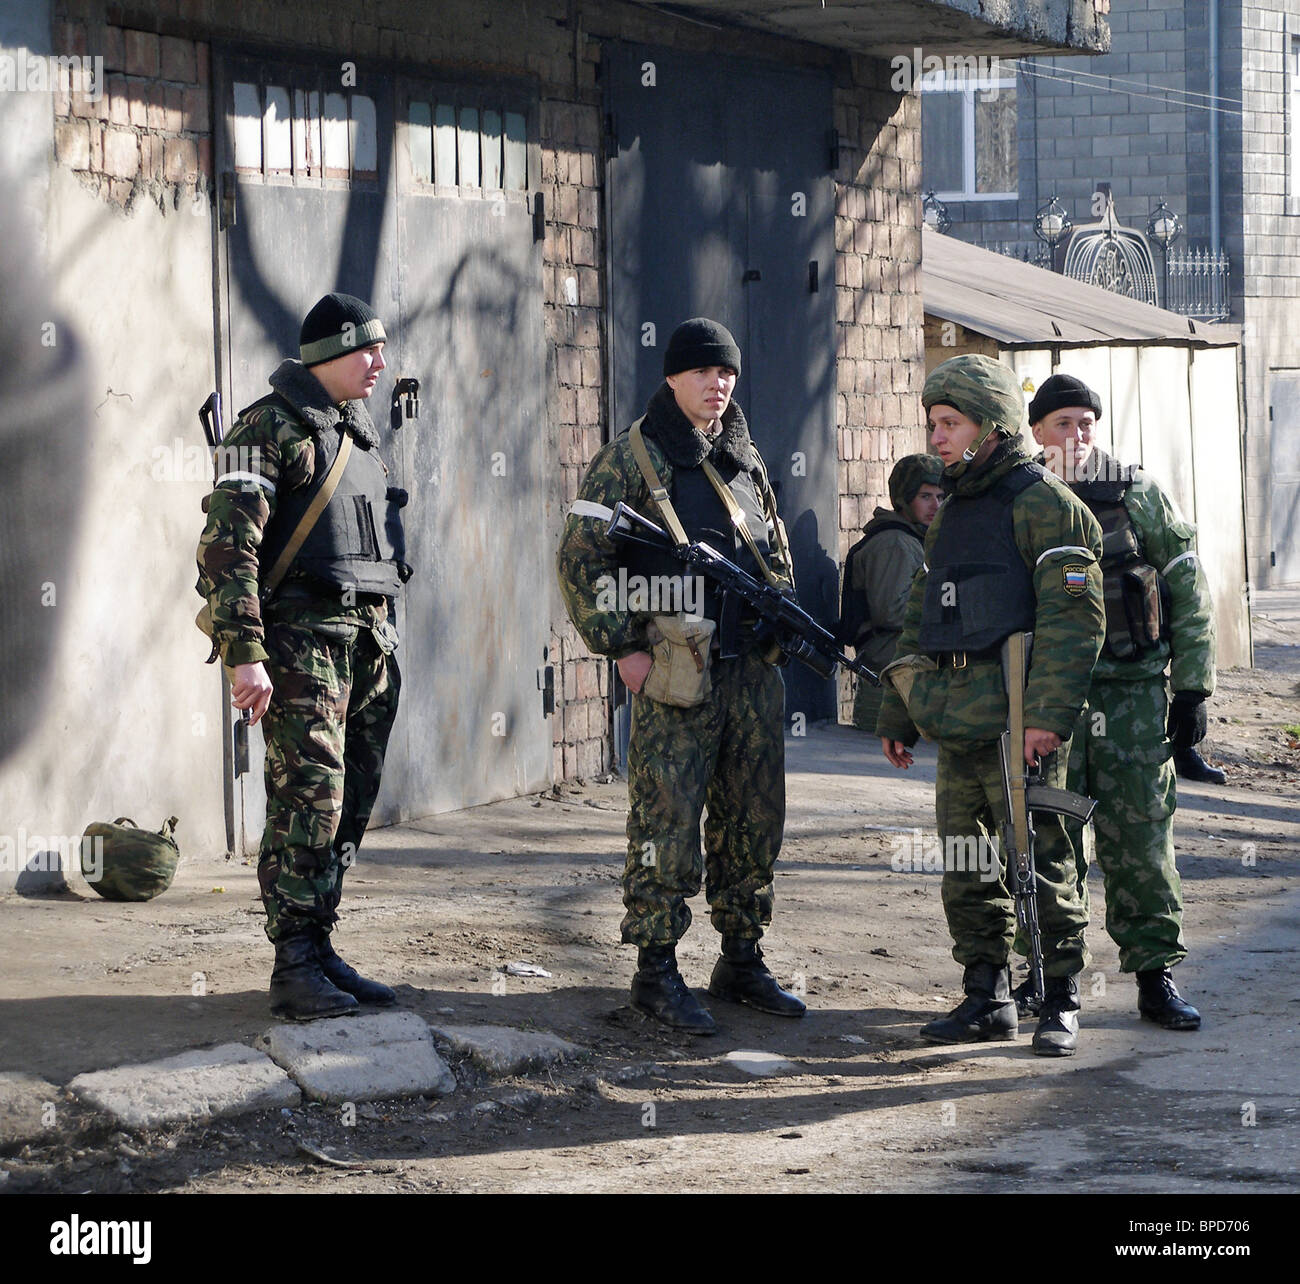 4 militants killed in Makhachkala in special operation by anti-terrorist commandos - Stock Image